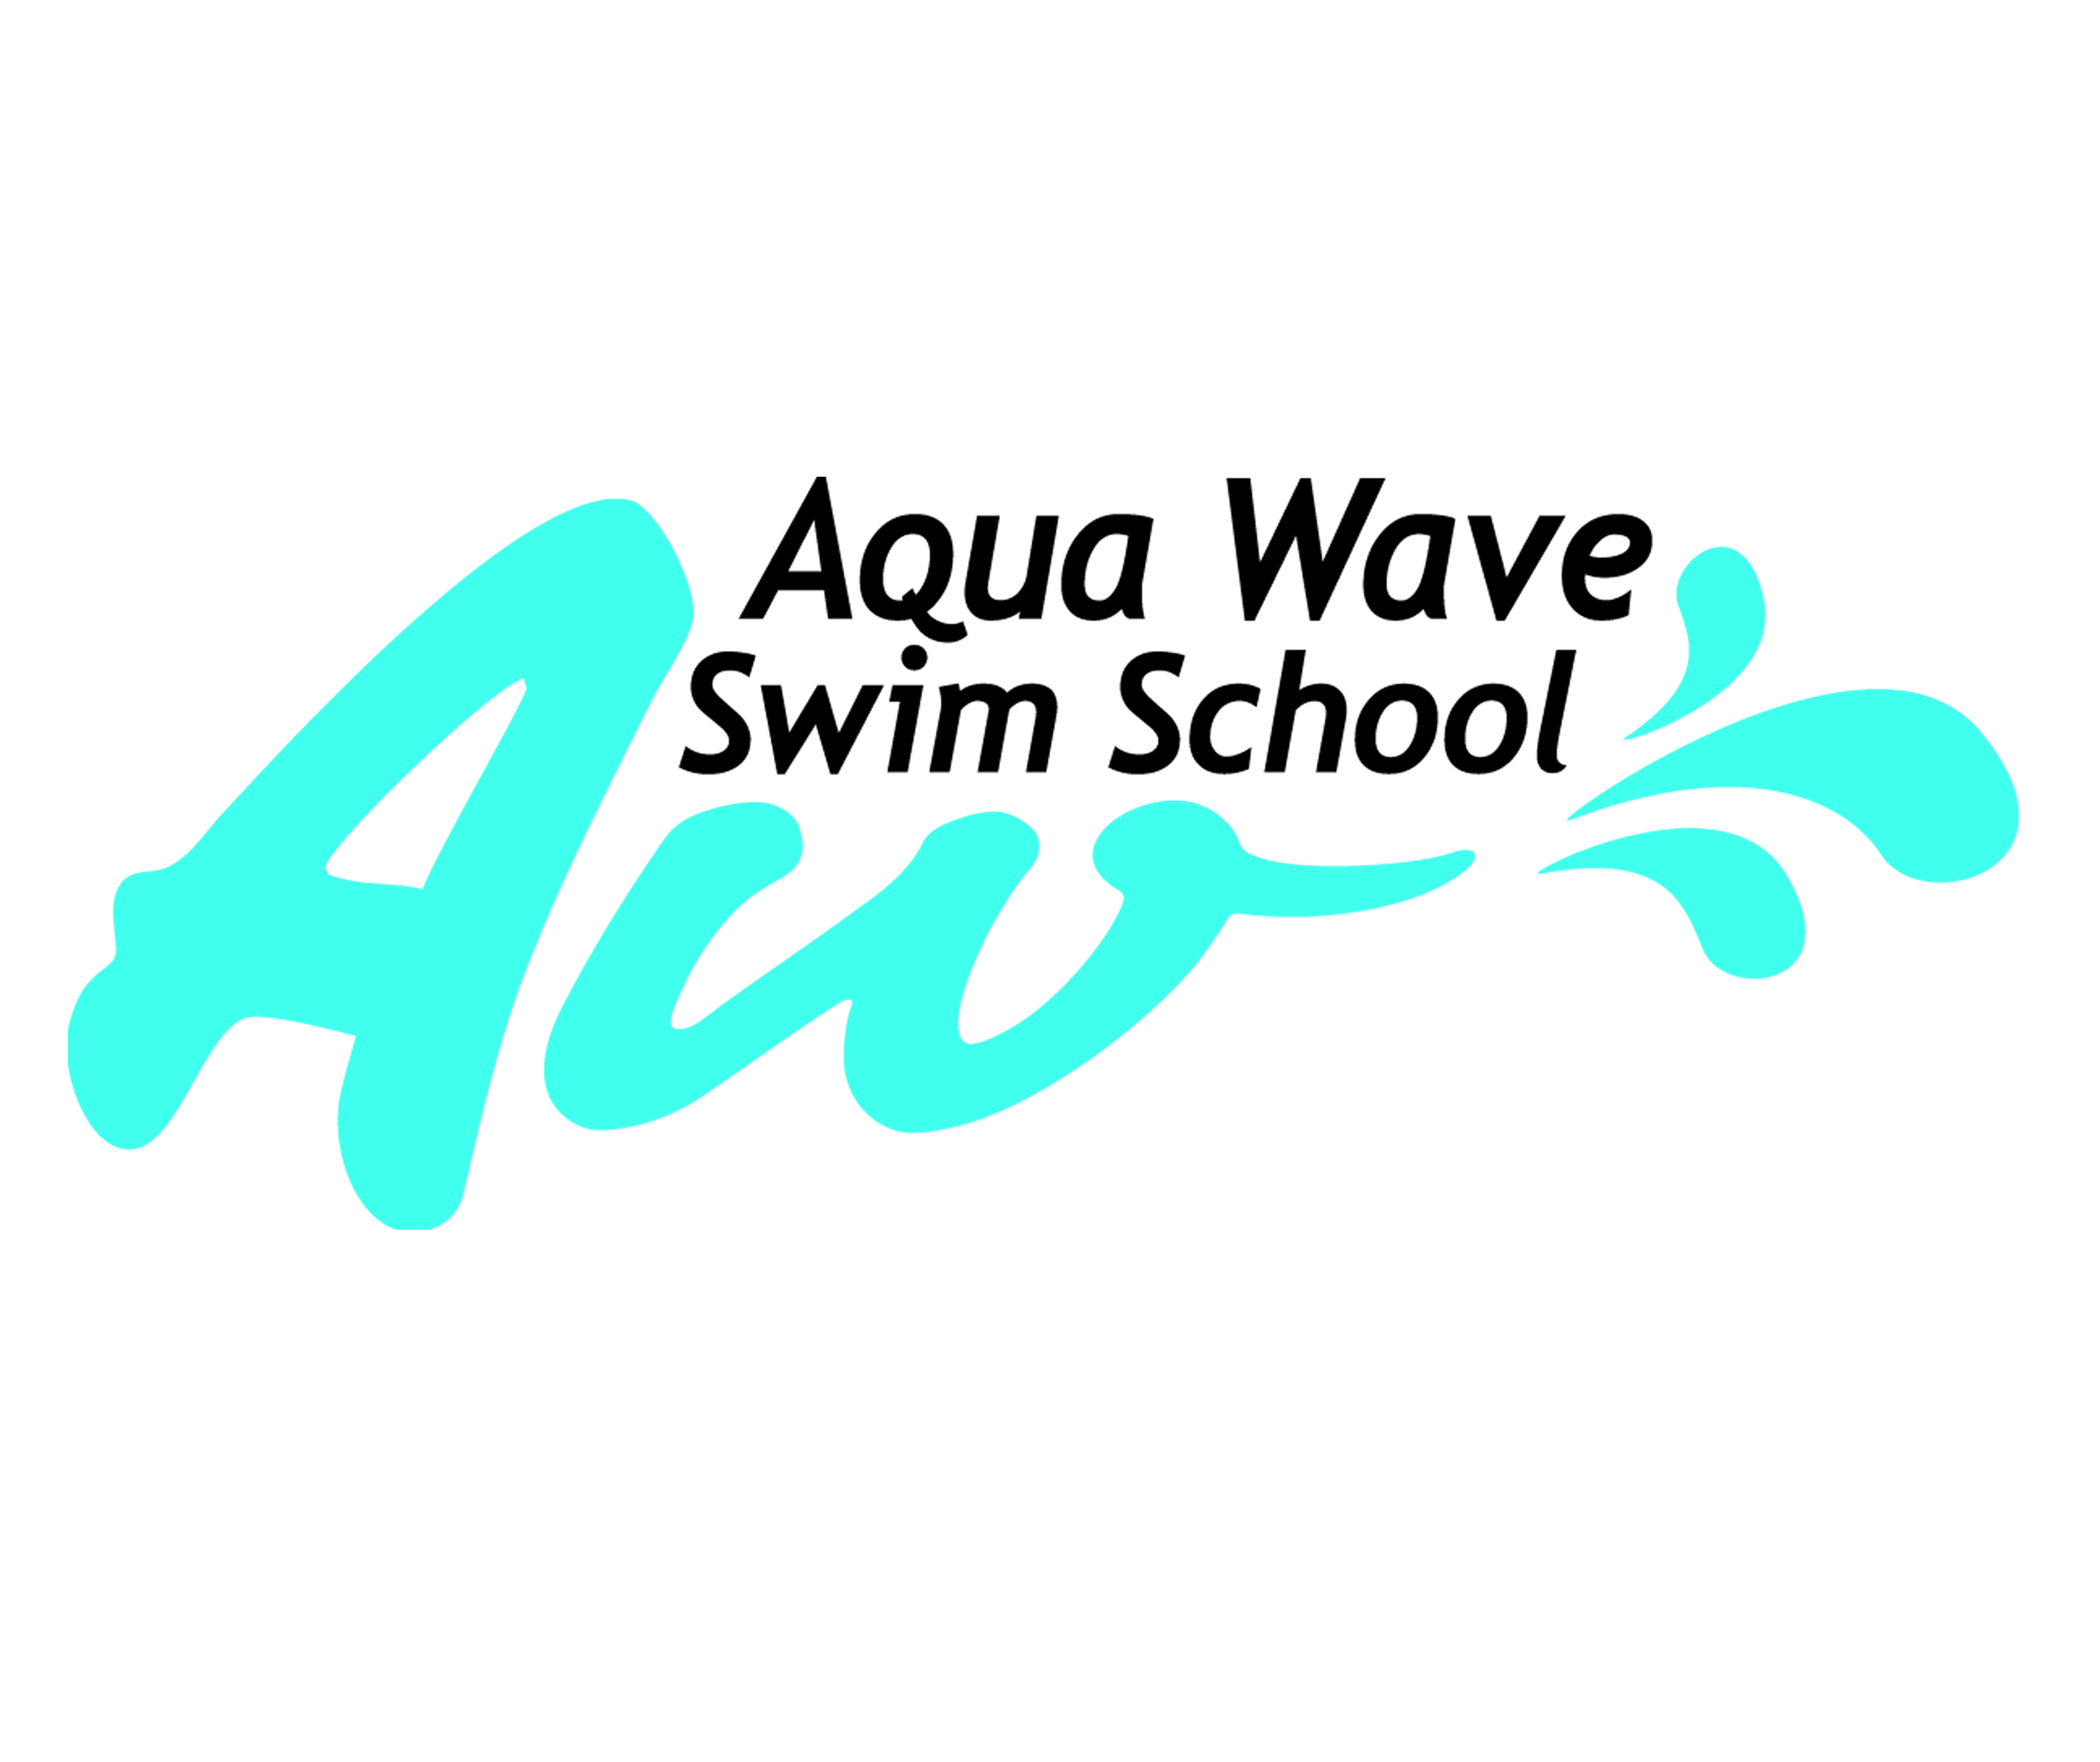 Best activity providers for kids in aliso viejo ca aqua wave swim school foothill ranch ca 1betcityfo Images